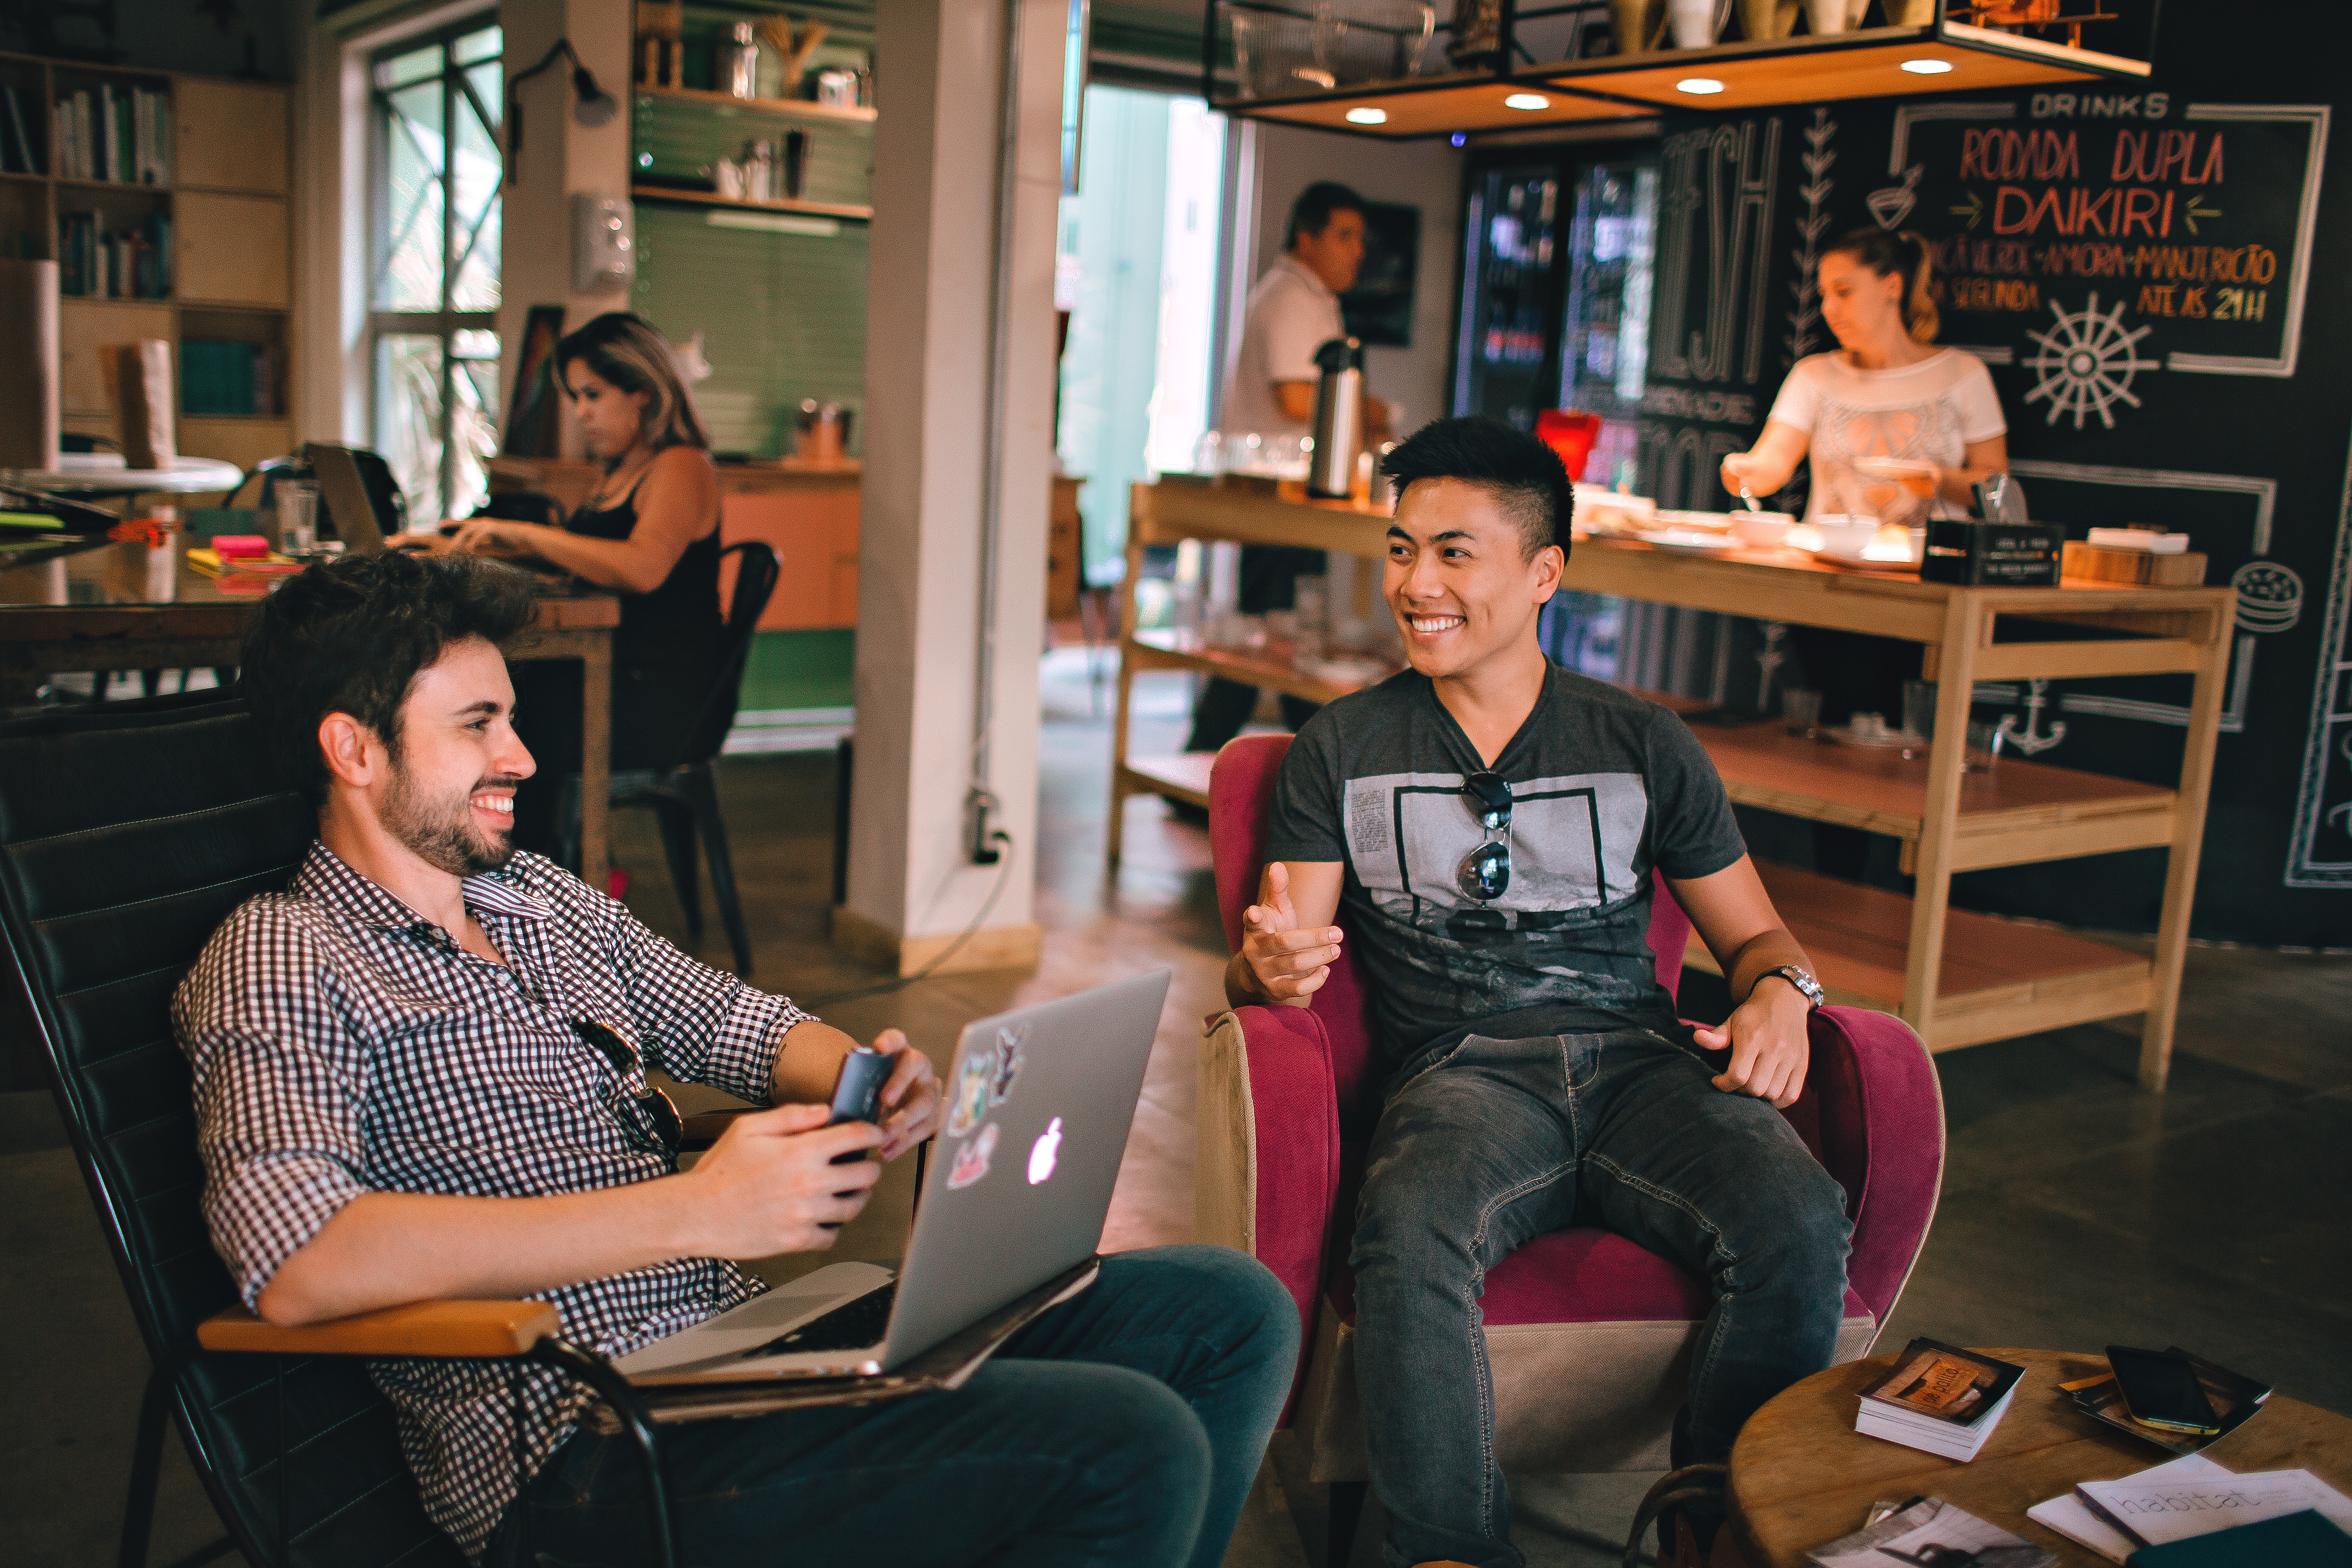 How Coworking Spaces Help Combat Freelance Isolation